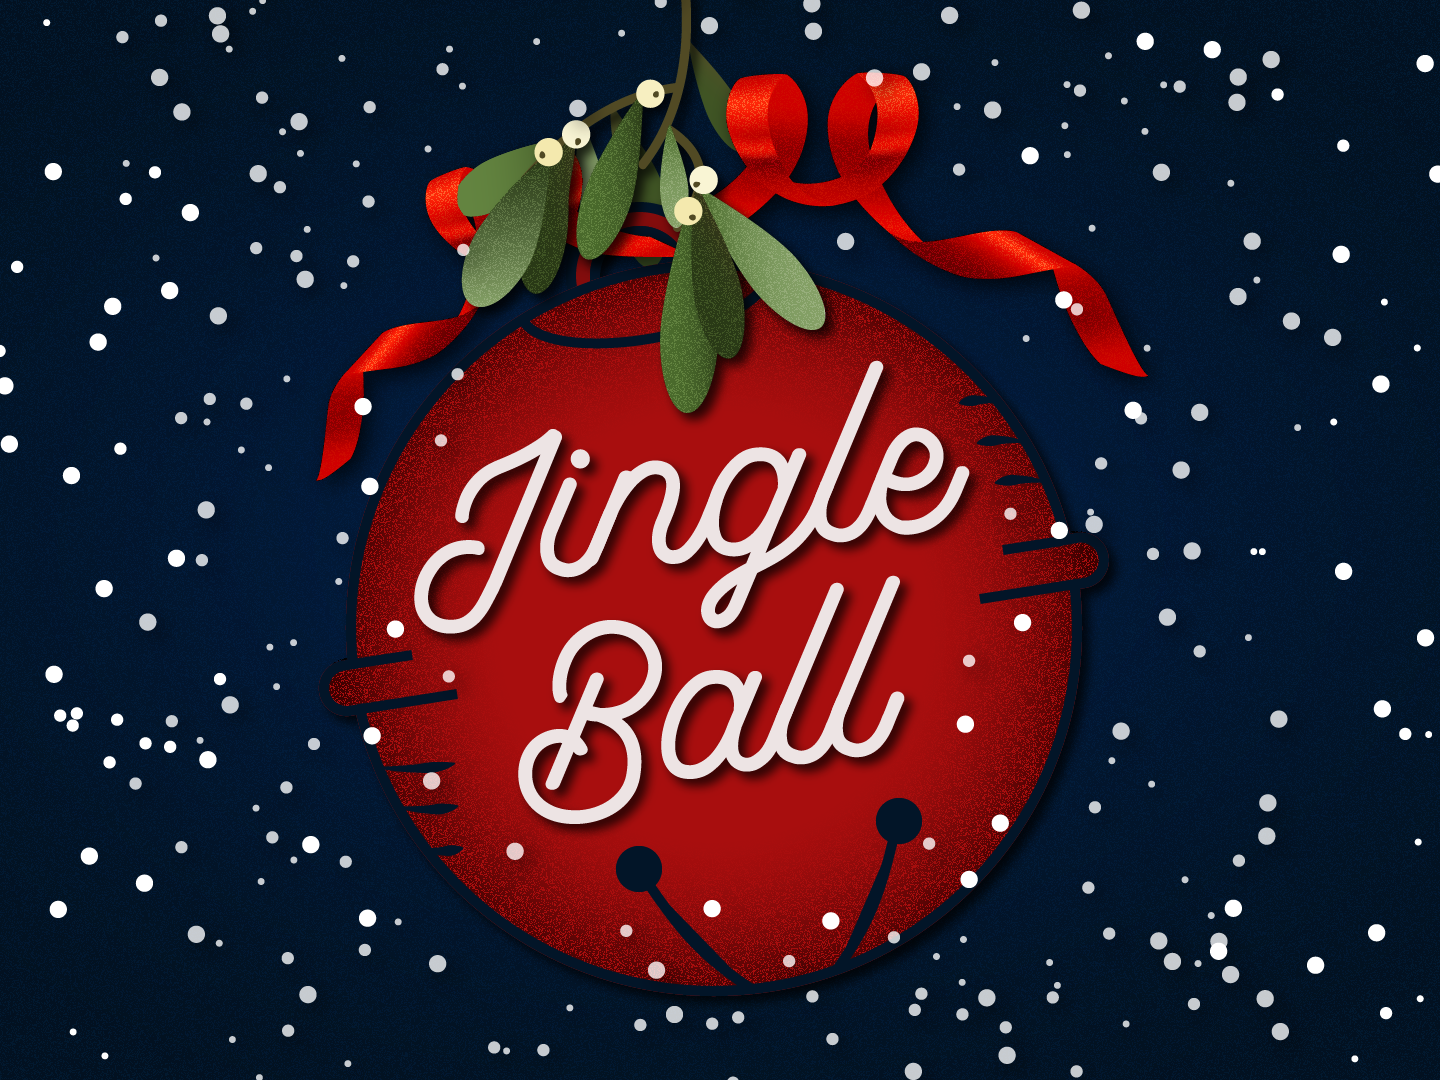 Jingle Ball holiday party christmas xmas holiday vector typography party illustration creative suite logo illustrator design branding art